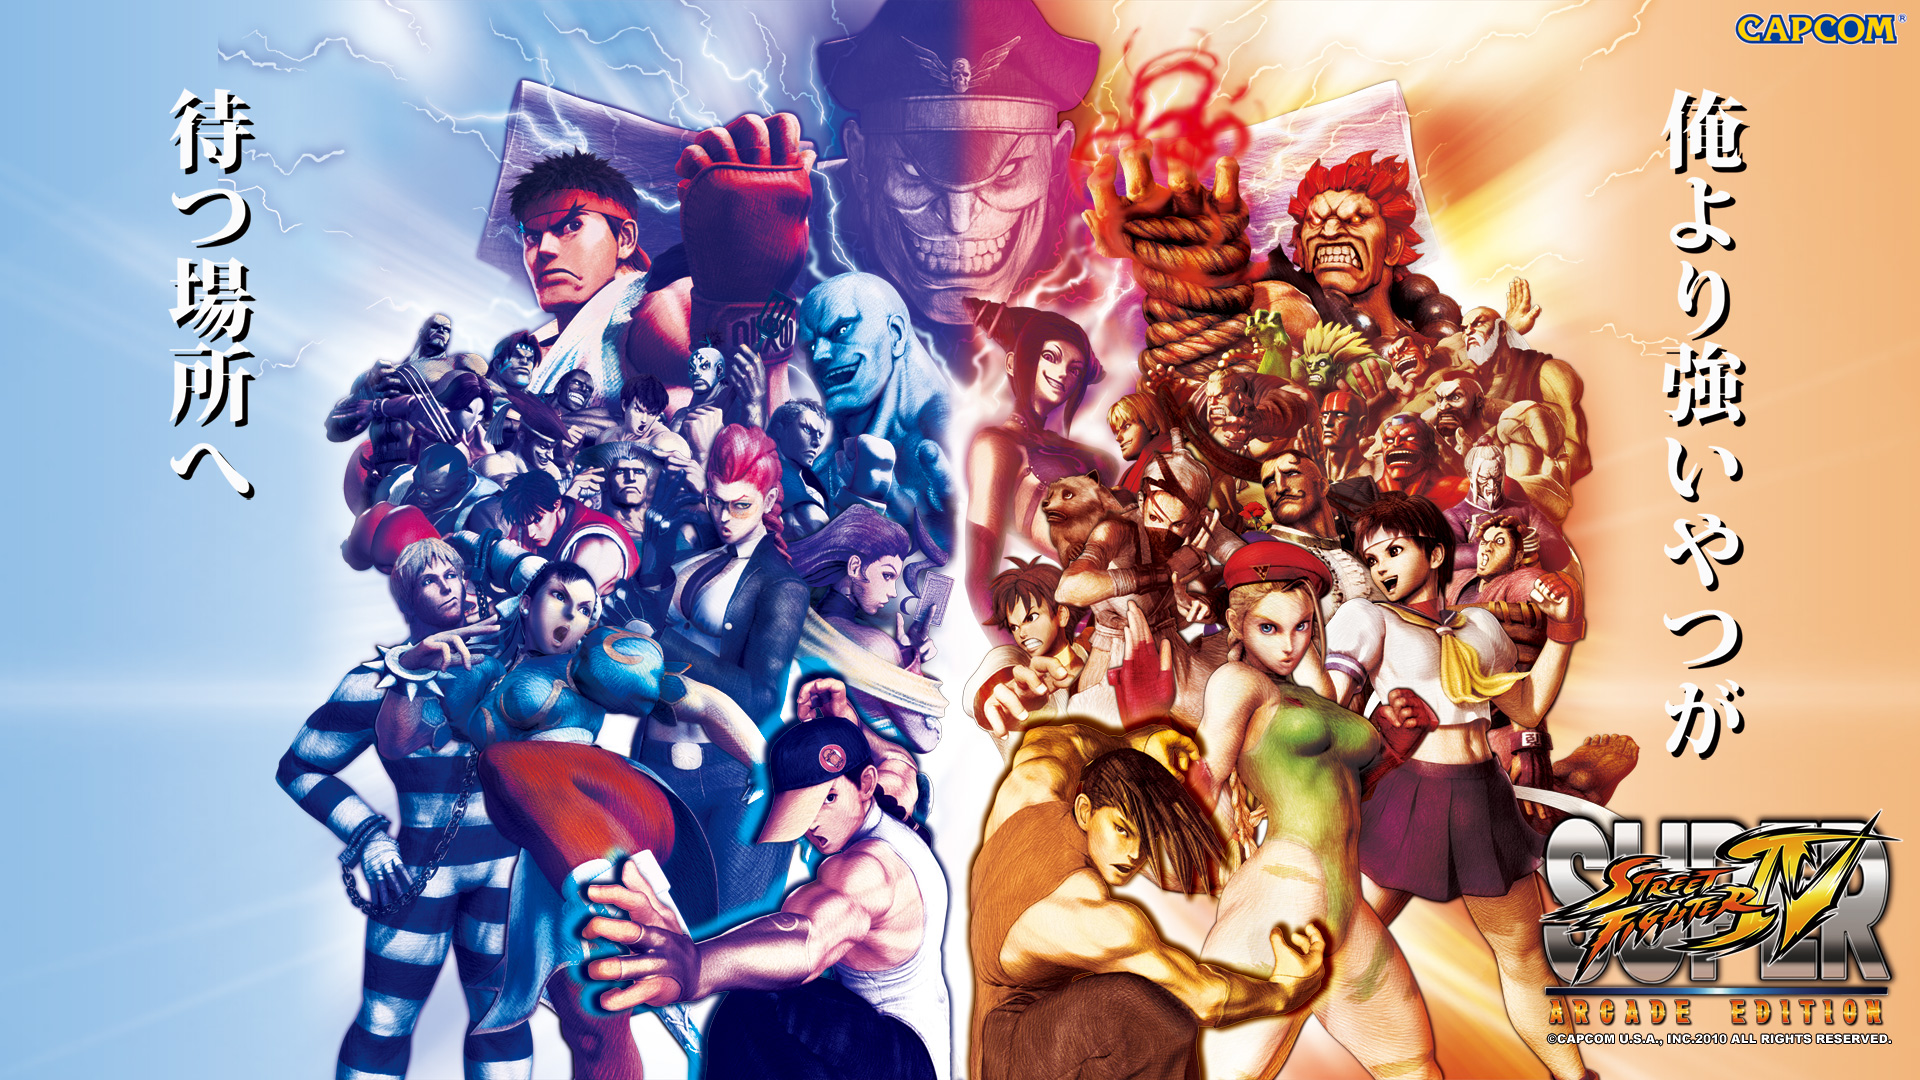 Wallpapers Full Hd Street Fighter Posted By Ryan Johnson